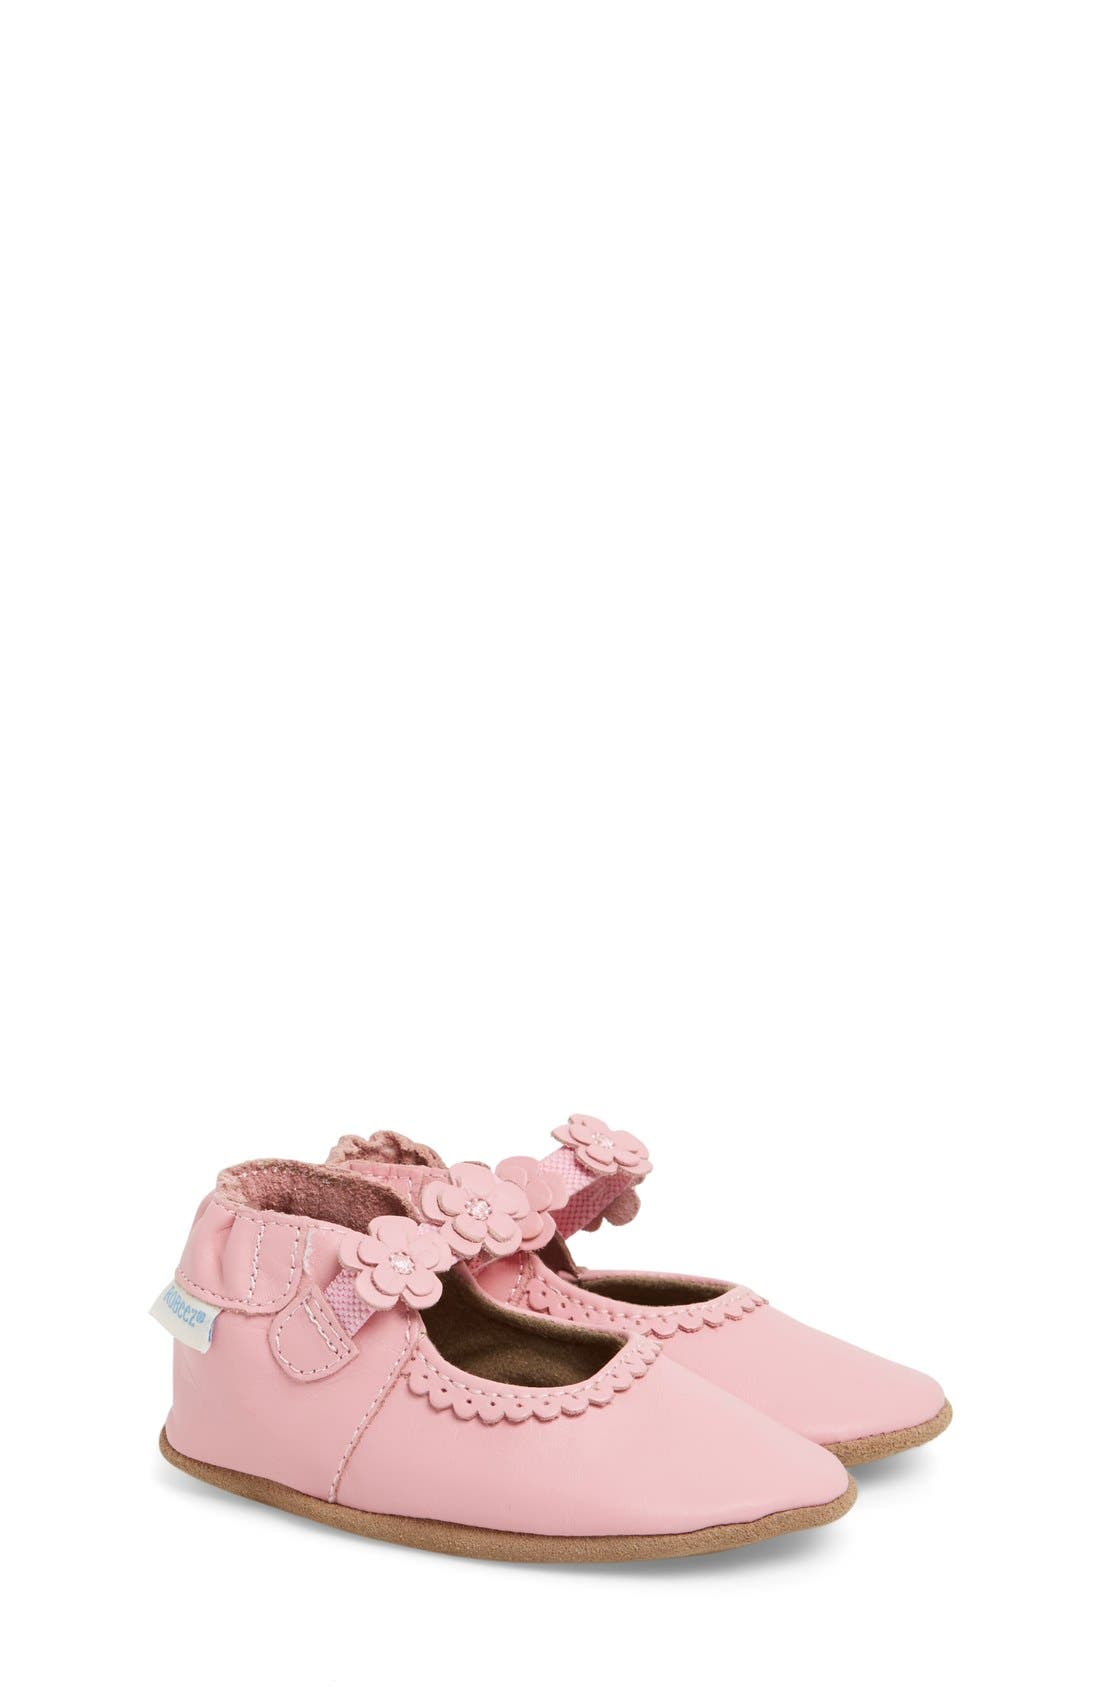 'Claire' Mary Jane Crib Shoe,                             Main thumbnail 1, color,                             PRISM PINK